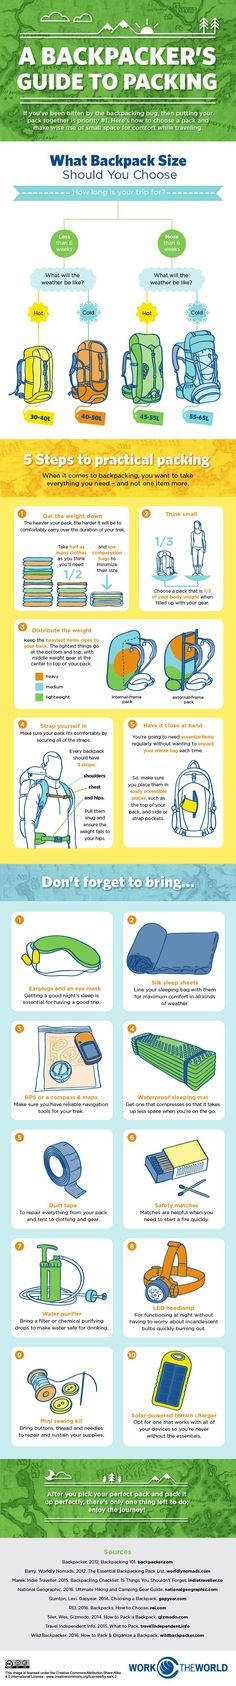 A Backpacker's Guide to Packing - Imgur